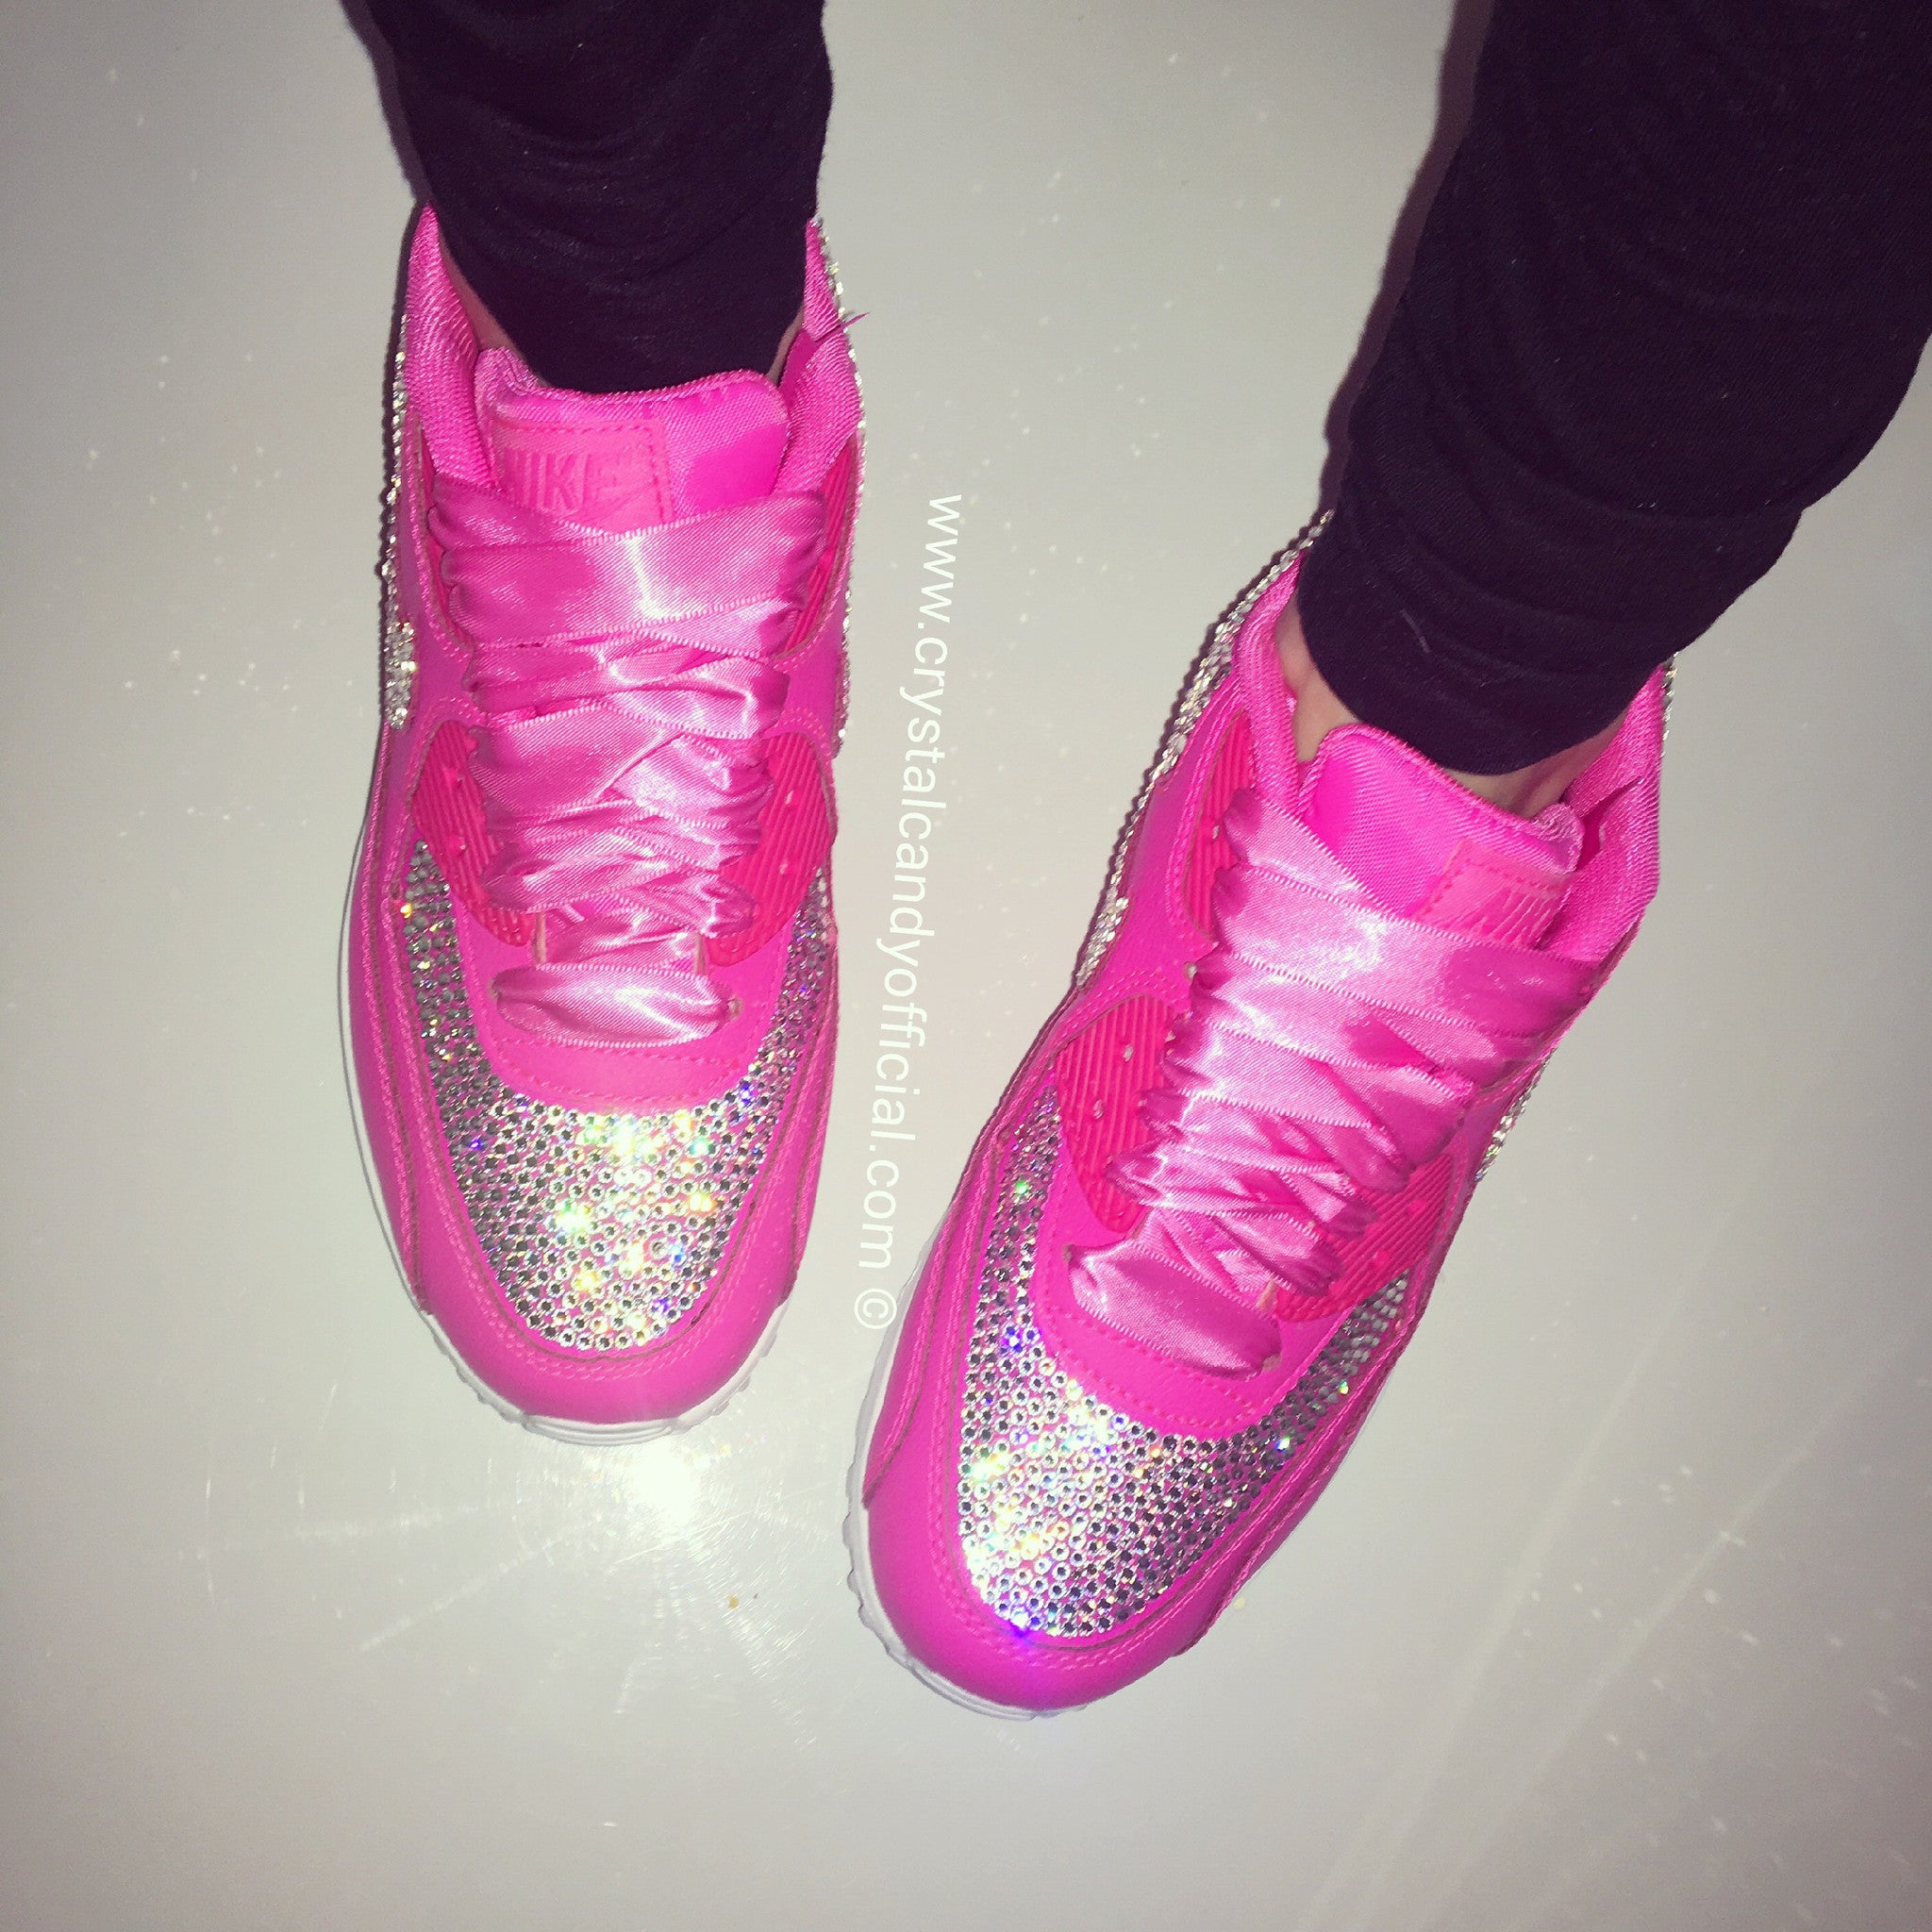 sports shoes b2ea8 8342a Crystal Nike Air Max 90 s in Barbie Pink (Fully Crystallised) - Crystal  Candy Limited